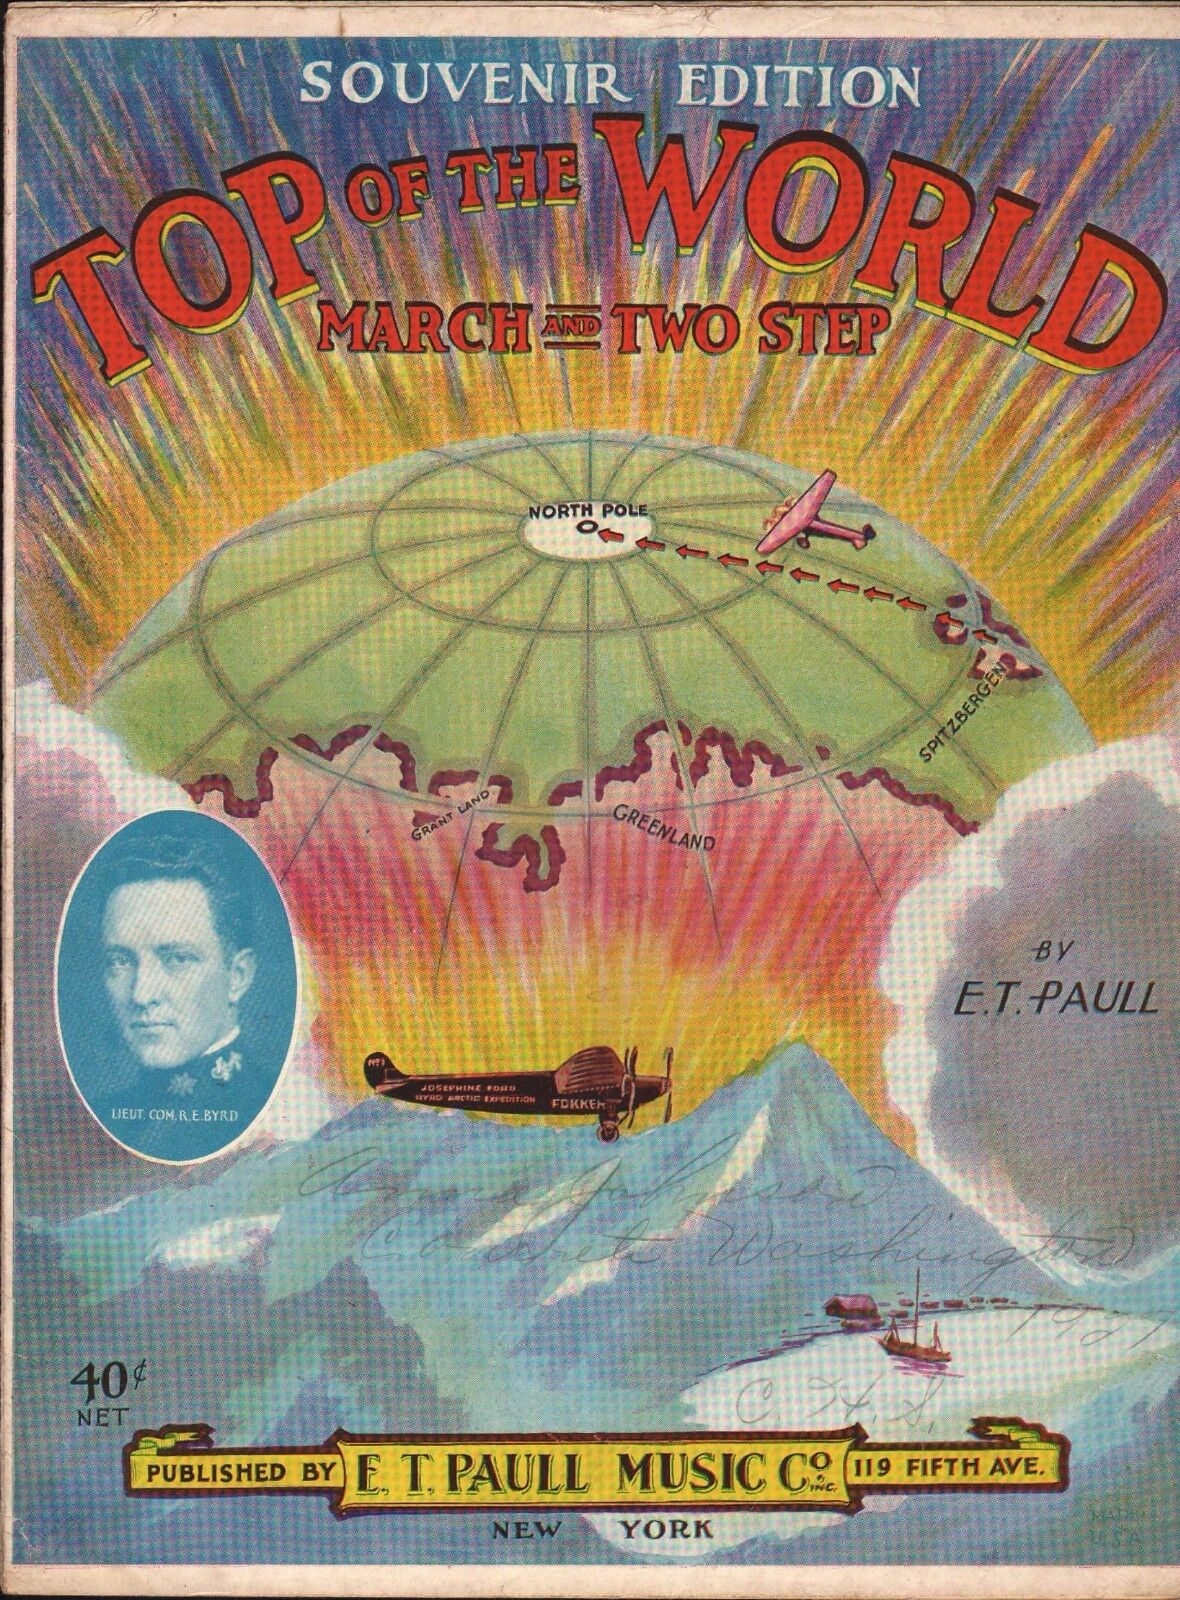 Top of the World 1926 E T PAULL Byrd Arctic NORTH POLE Expedition Sheet Music